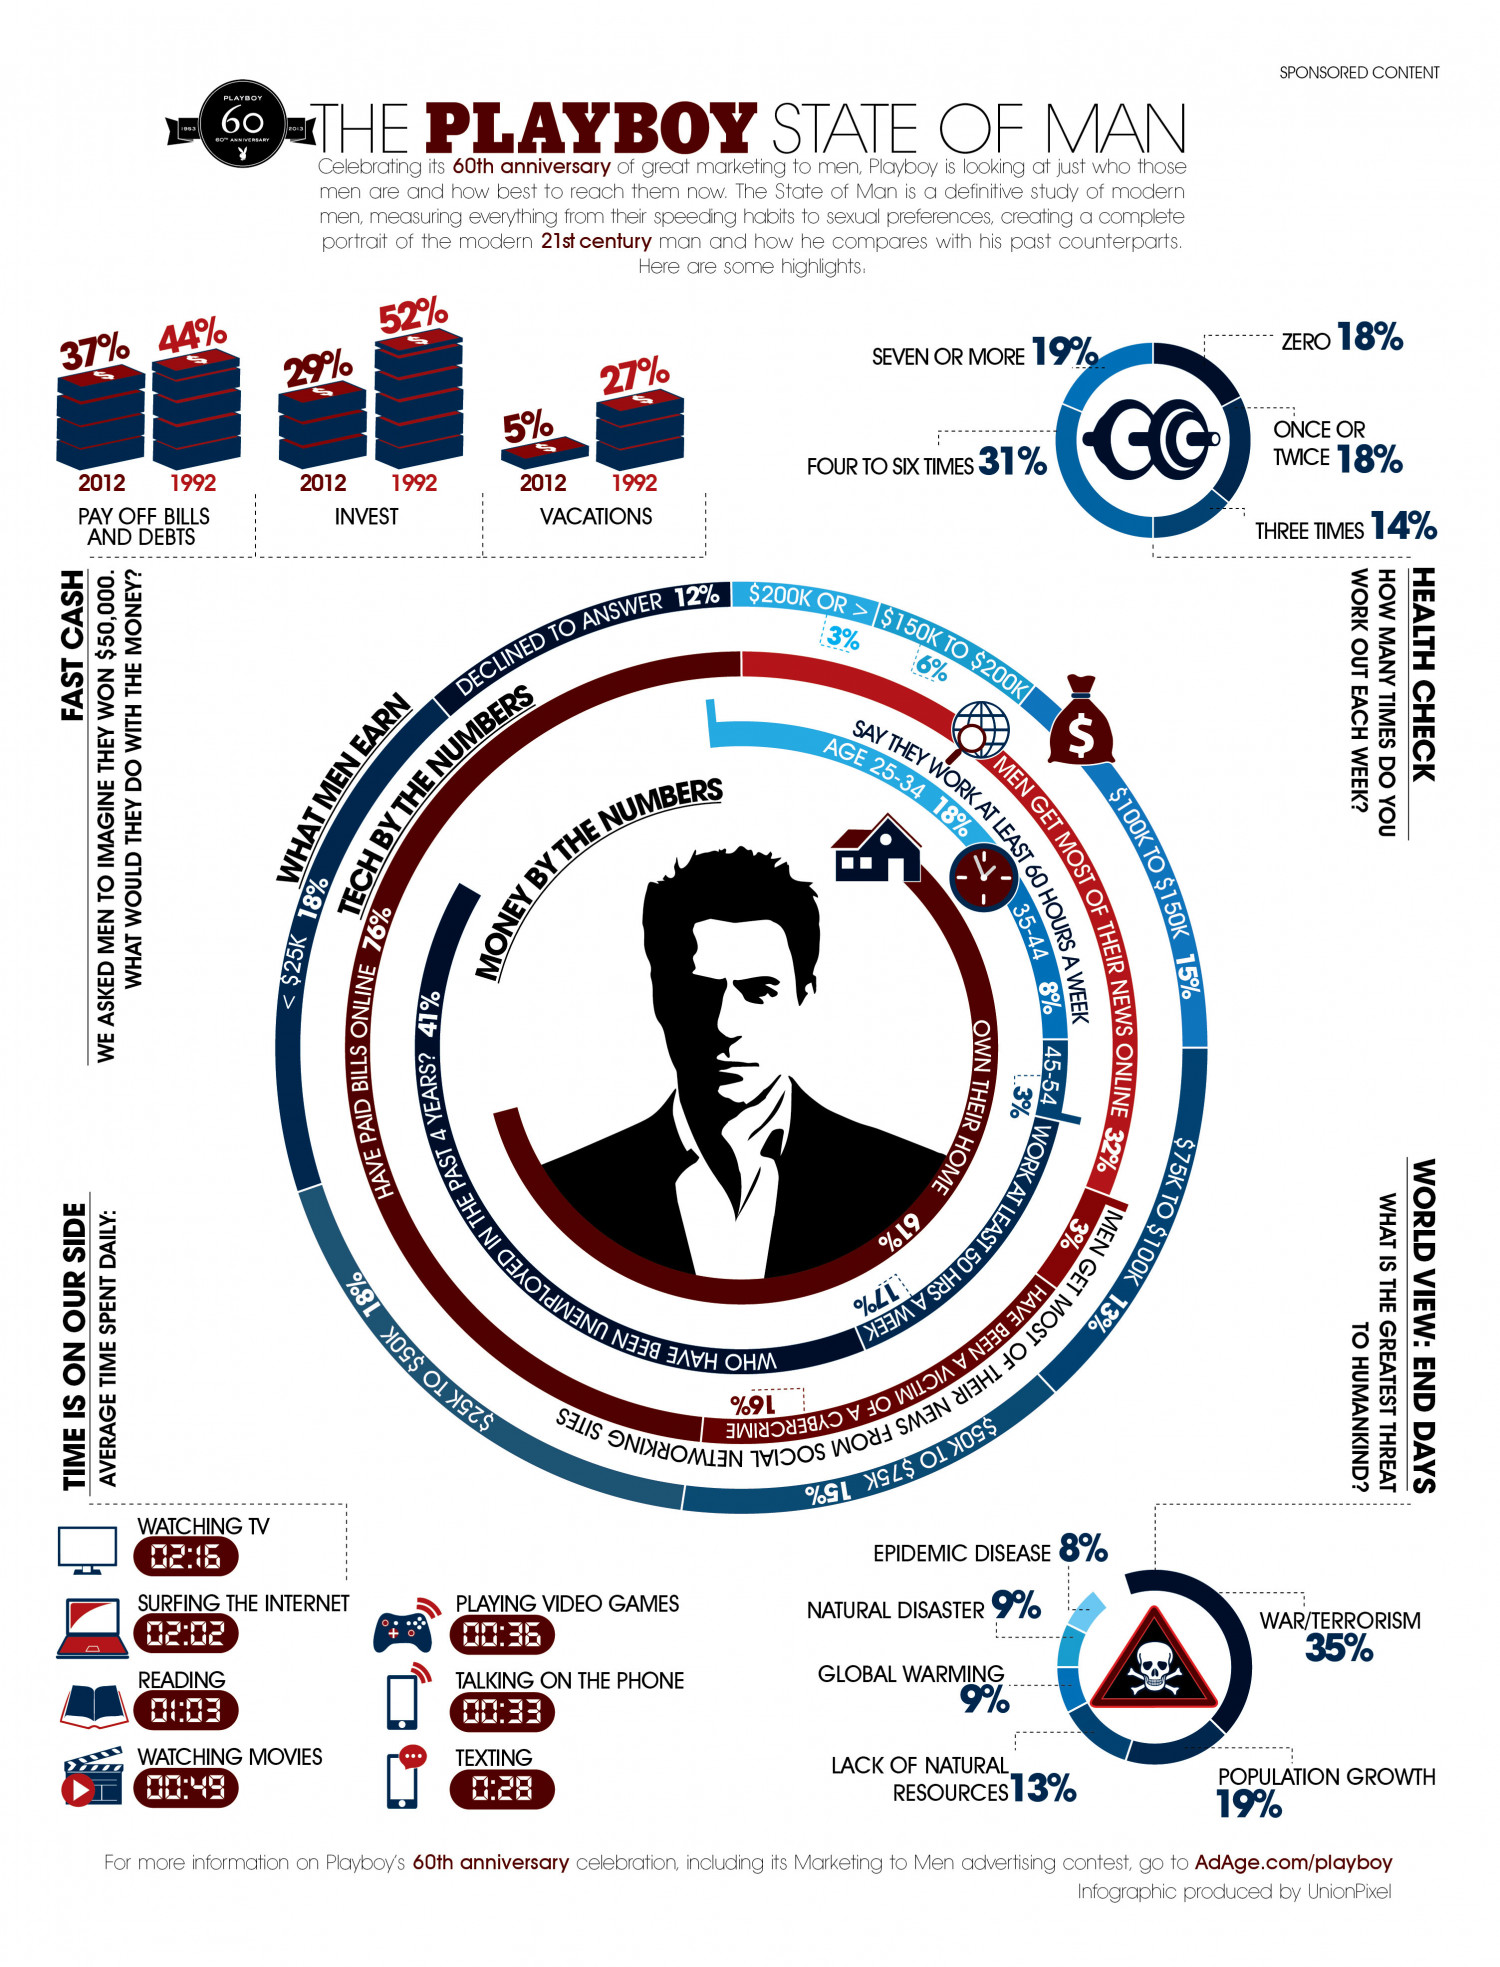 The Playboy State of Man Infographic